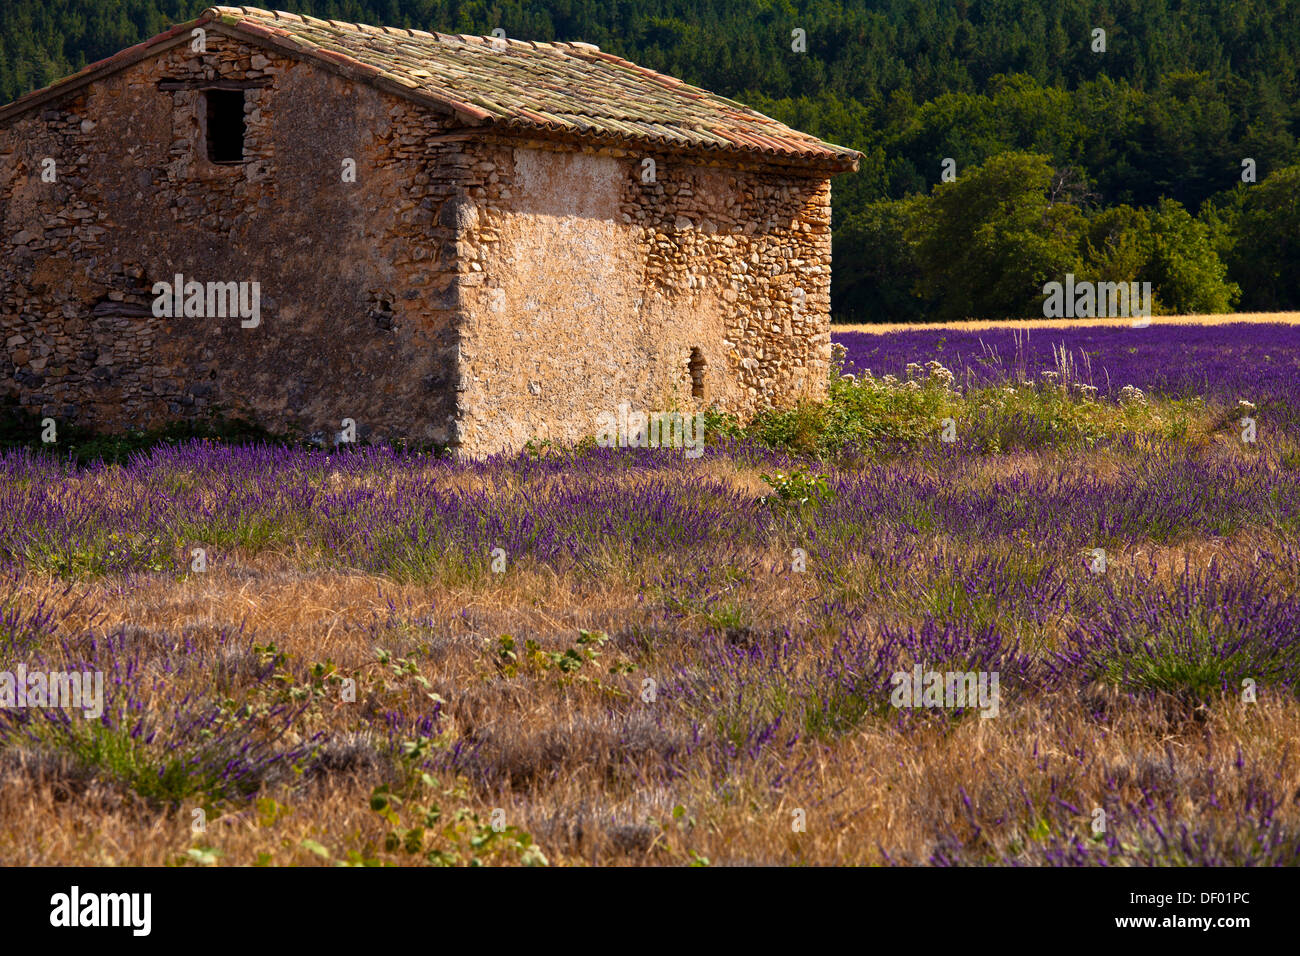 Old stone hut in a blooming field of Lavender (Lavandula angustifolia), near St-Christol and Sault, Vaucluse Stock Photo